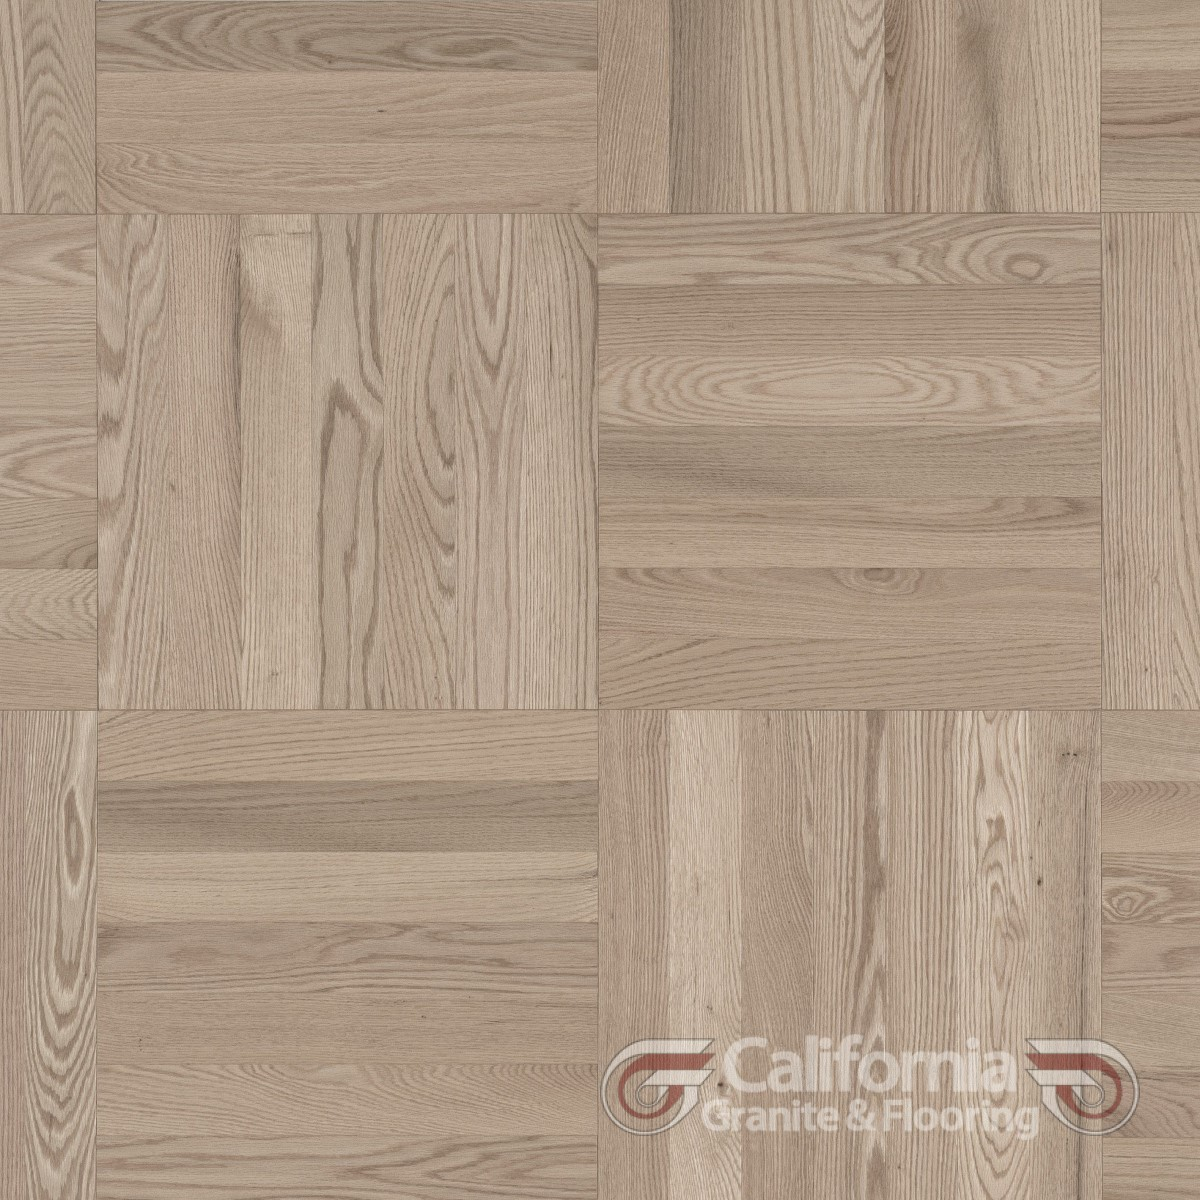 hardwood-flooring-maple-gelato-character-smooth-herringbone-2